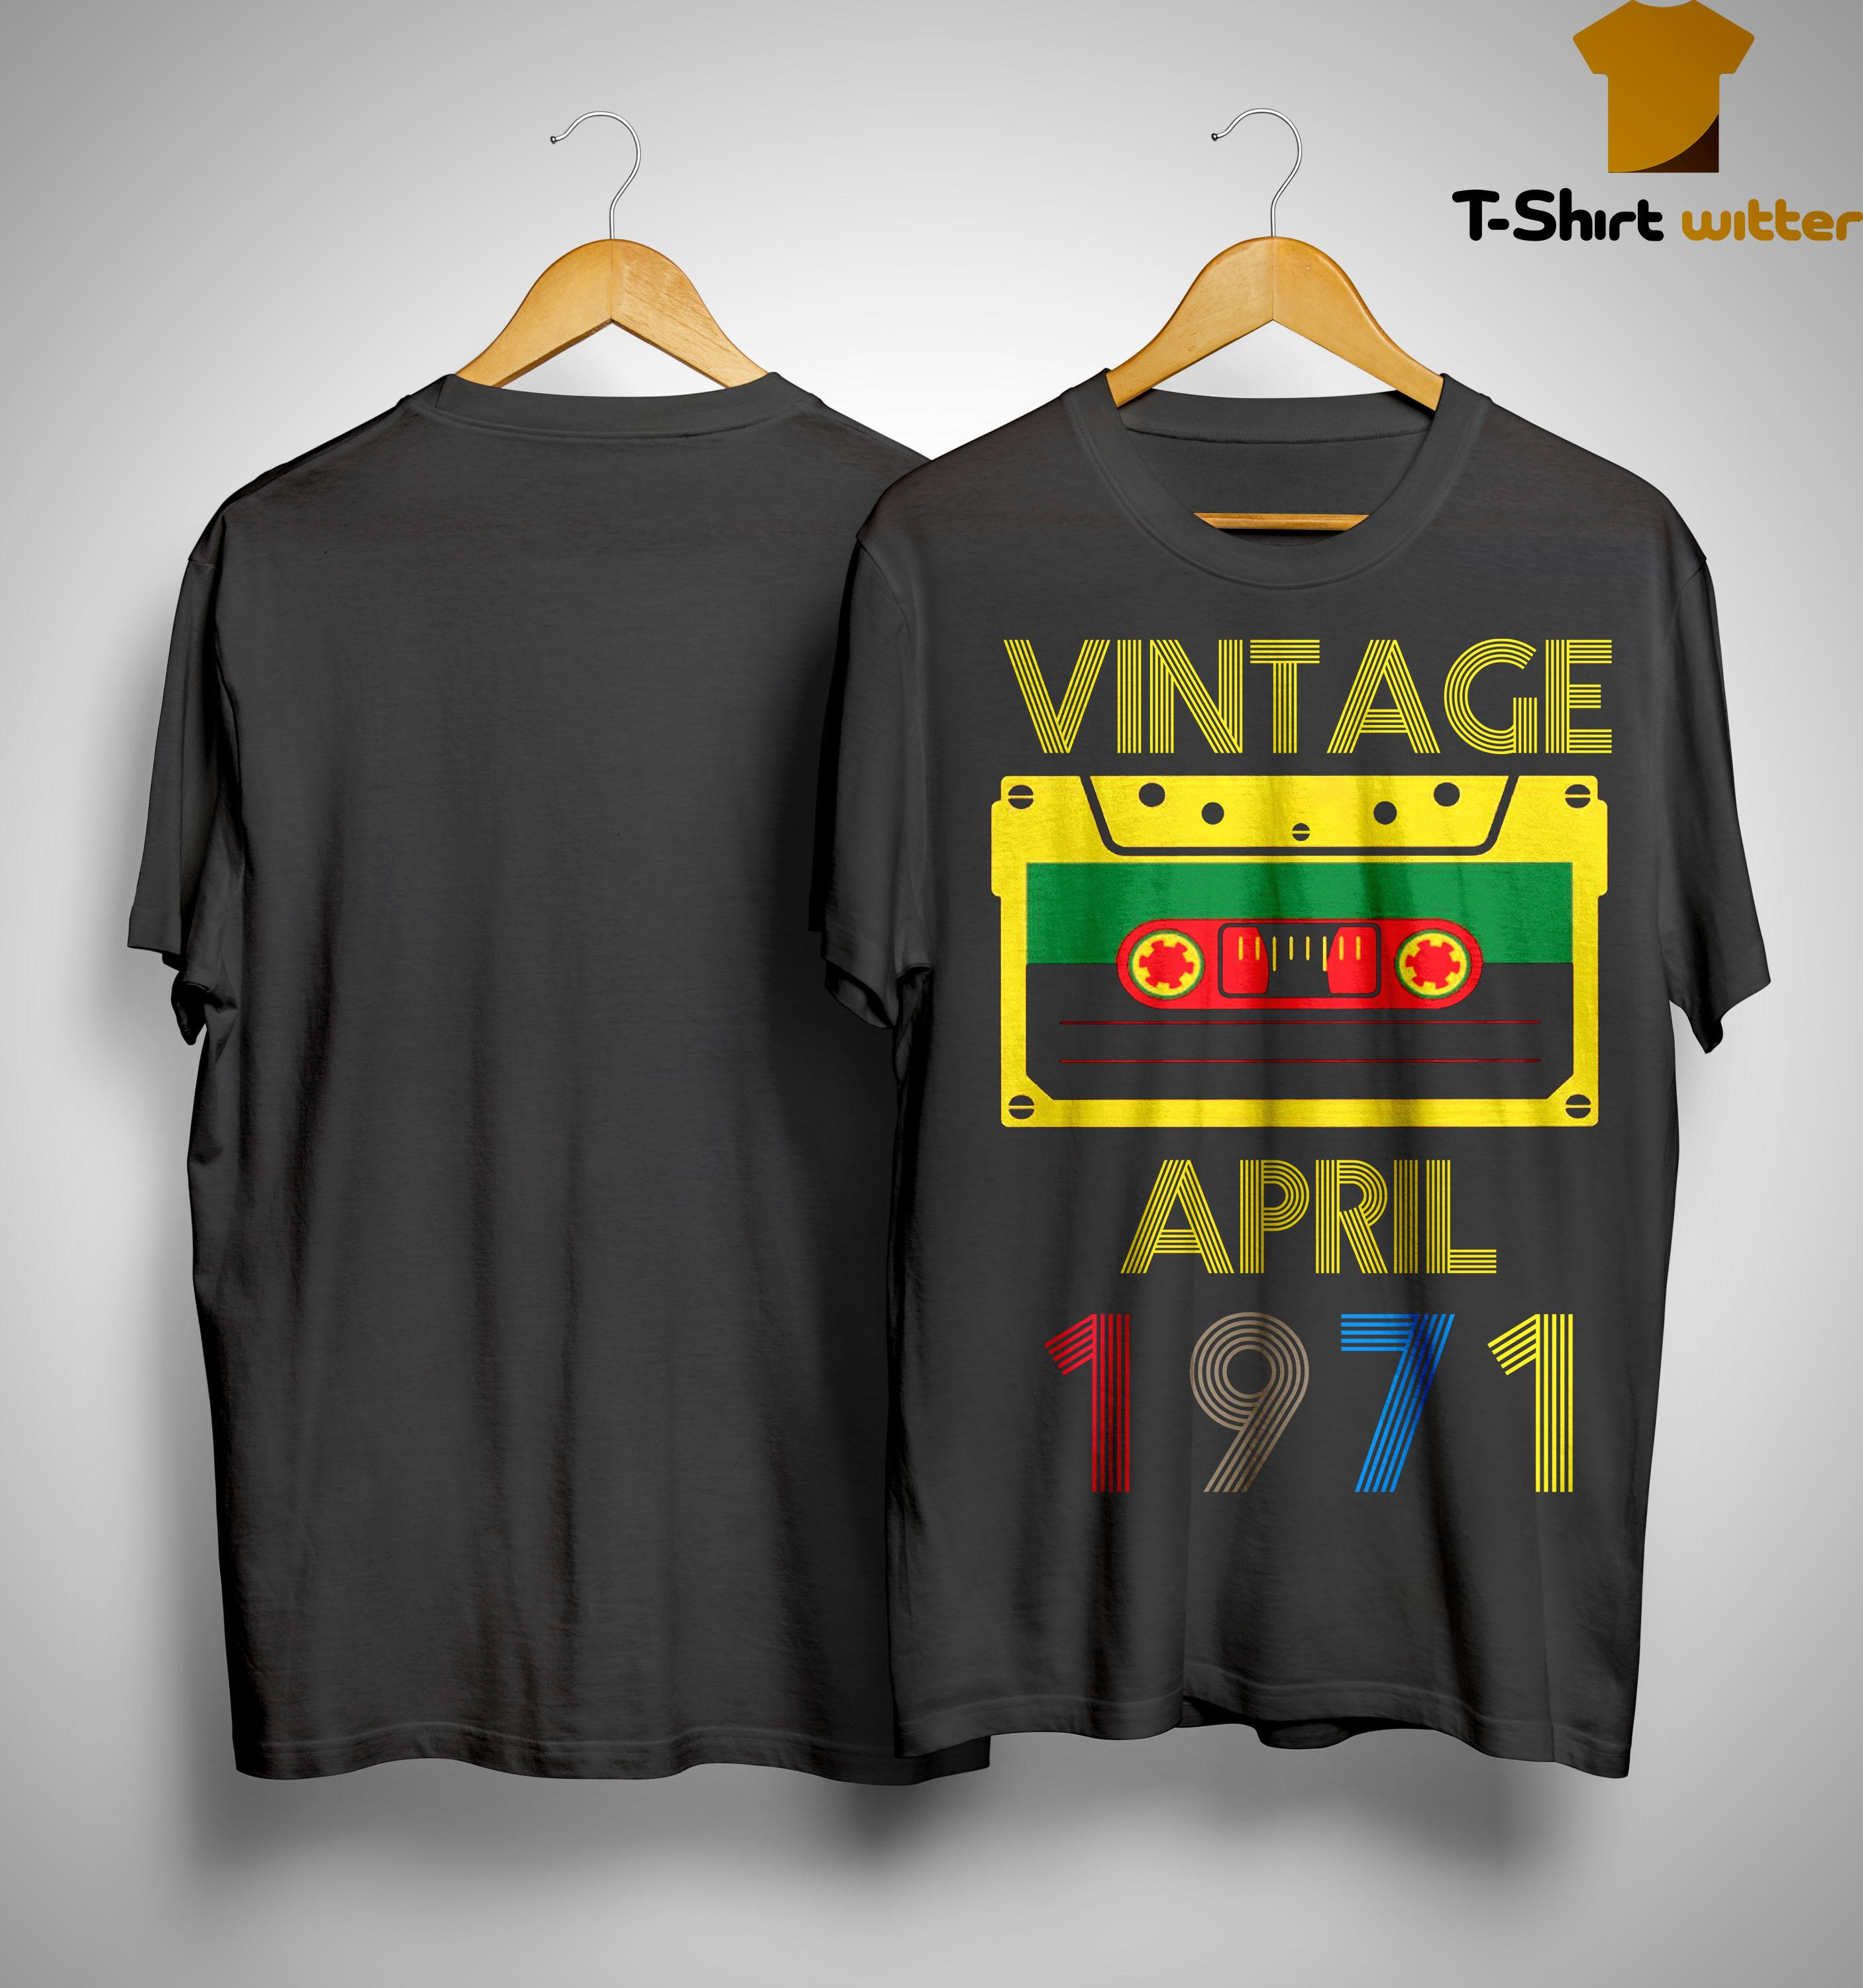 Video Tape Vintage April 1971 Shirt